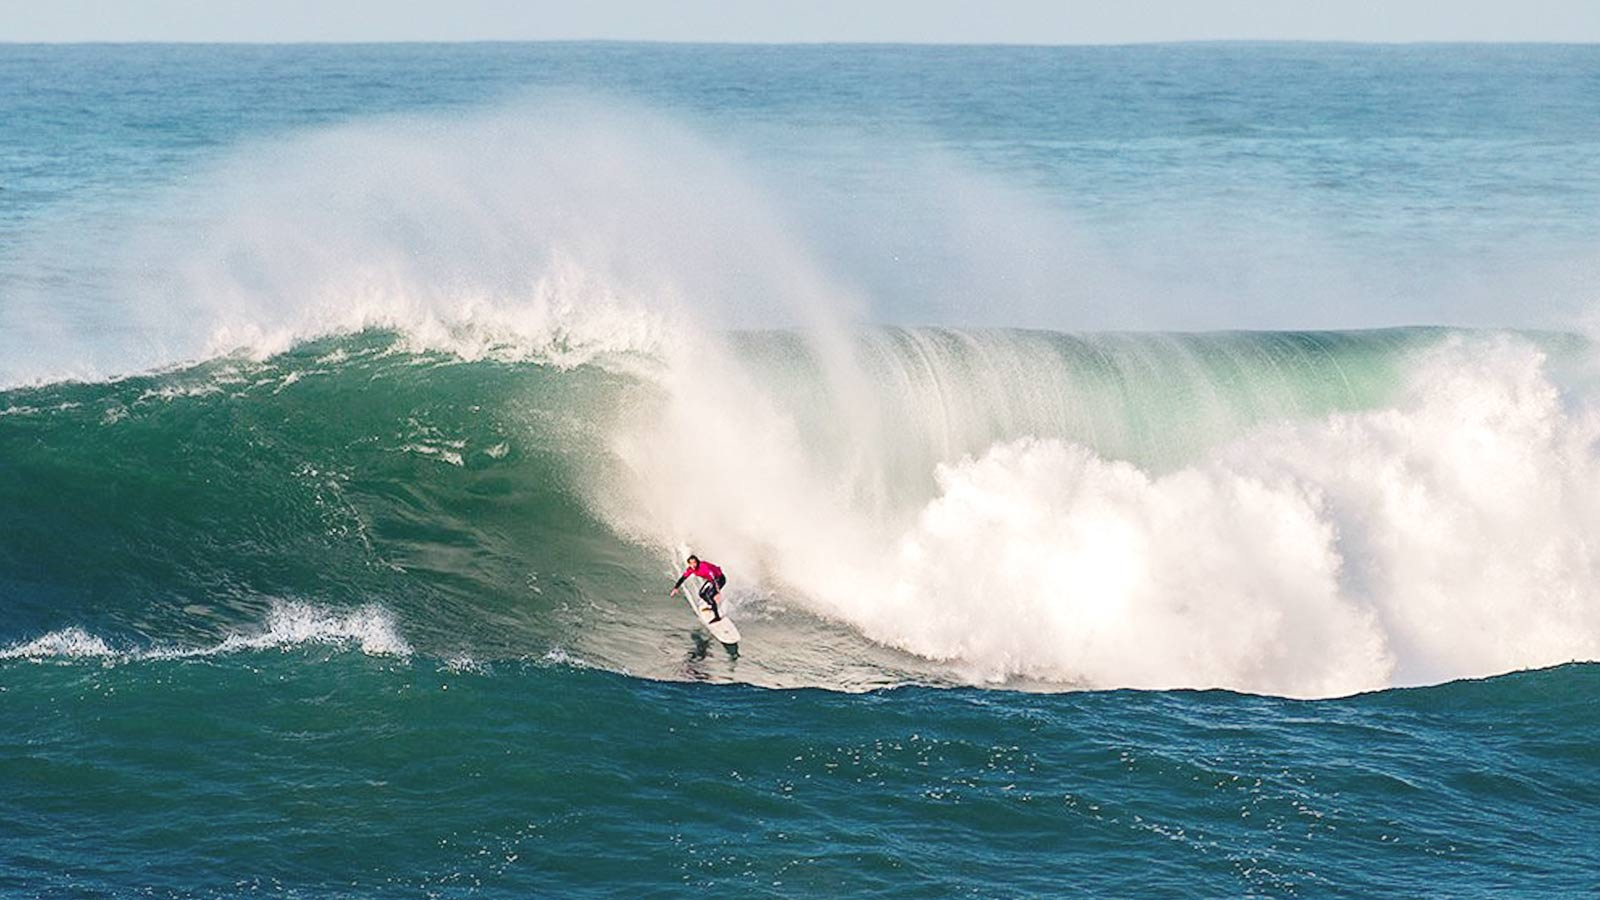 alessandro-piu-la-vaca-xxl-big-waves-surfculture-home